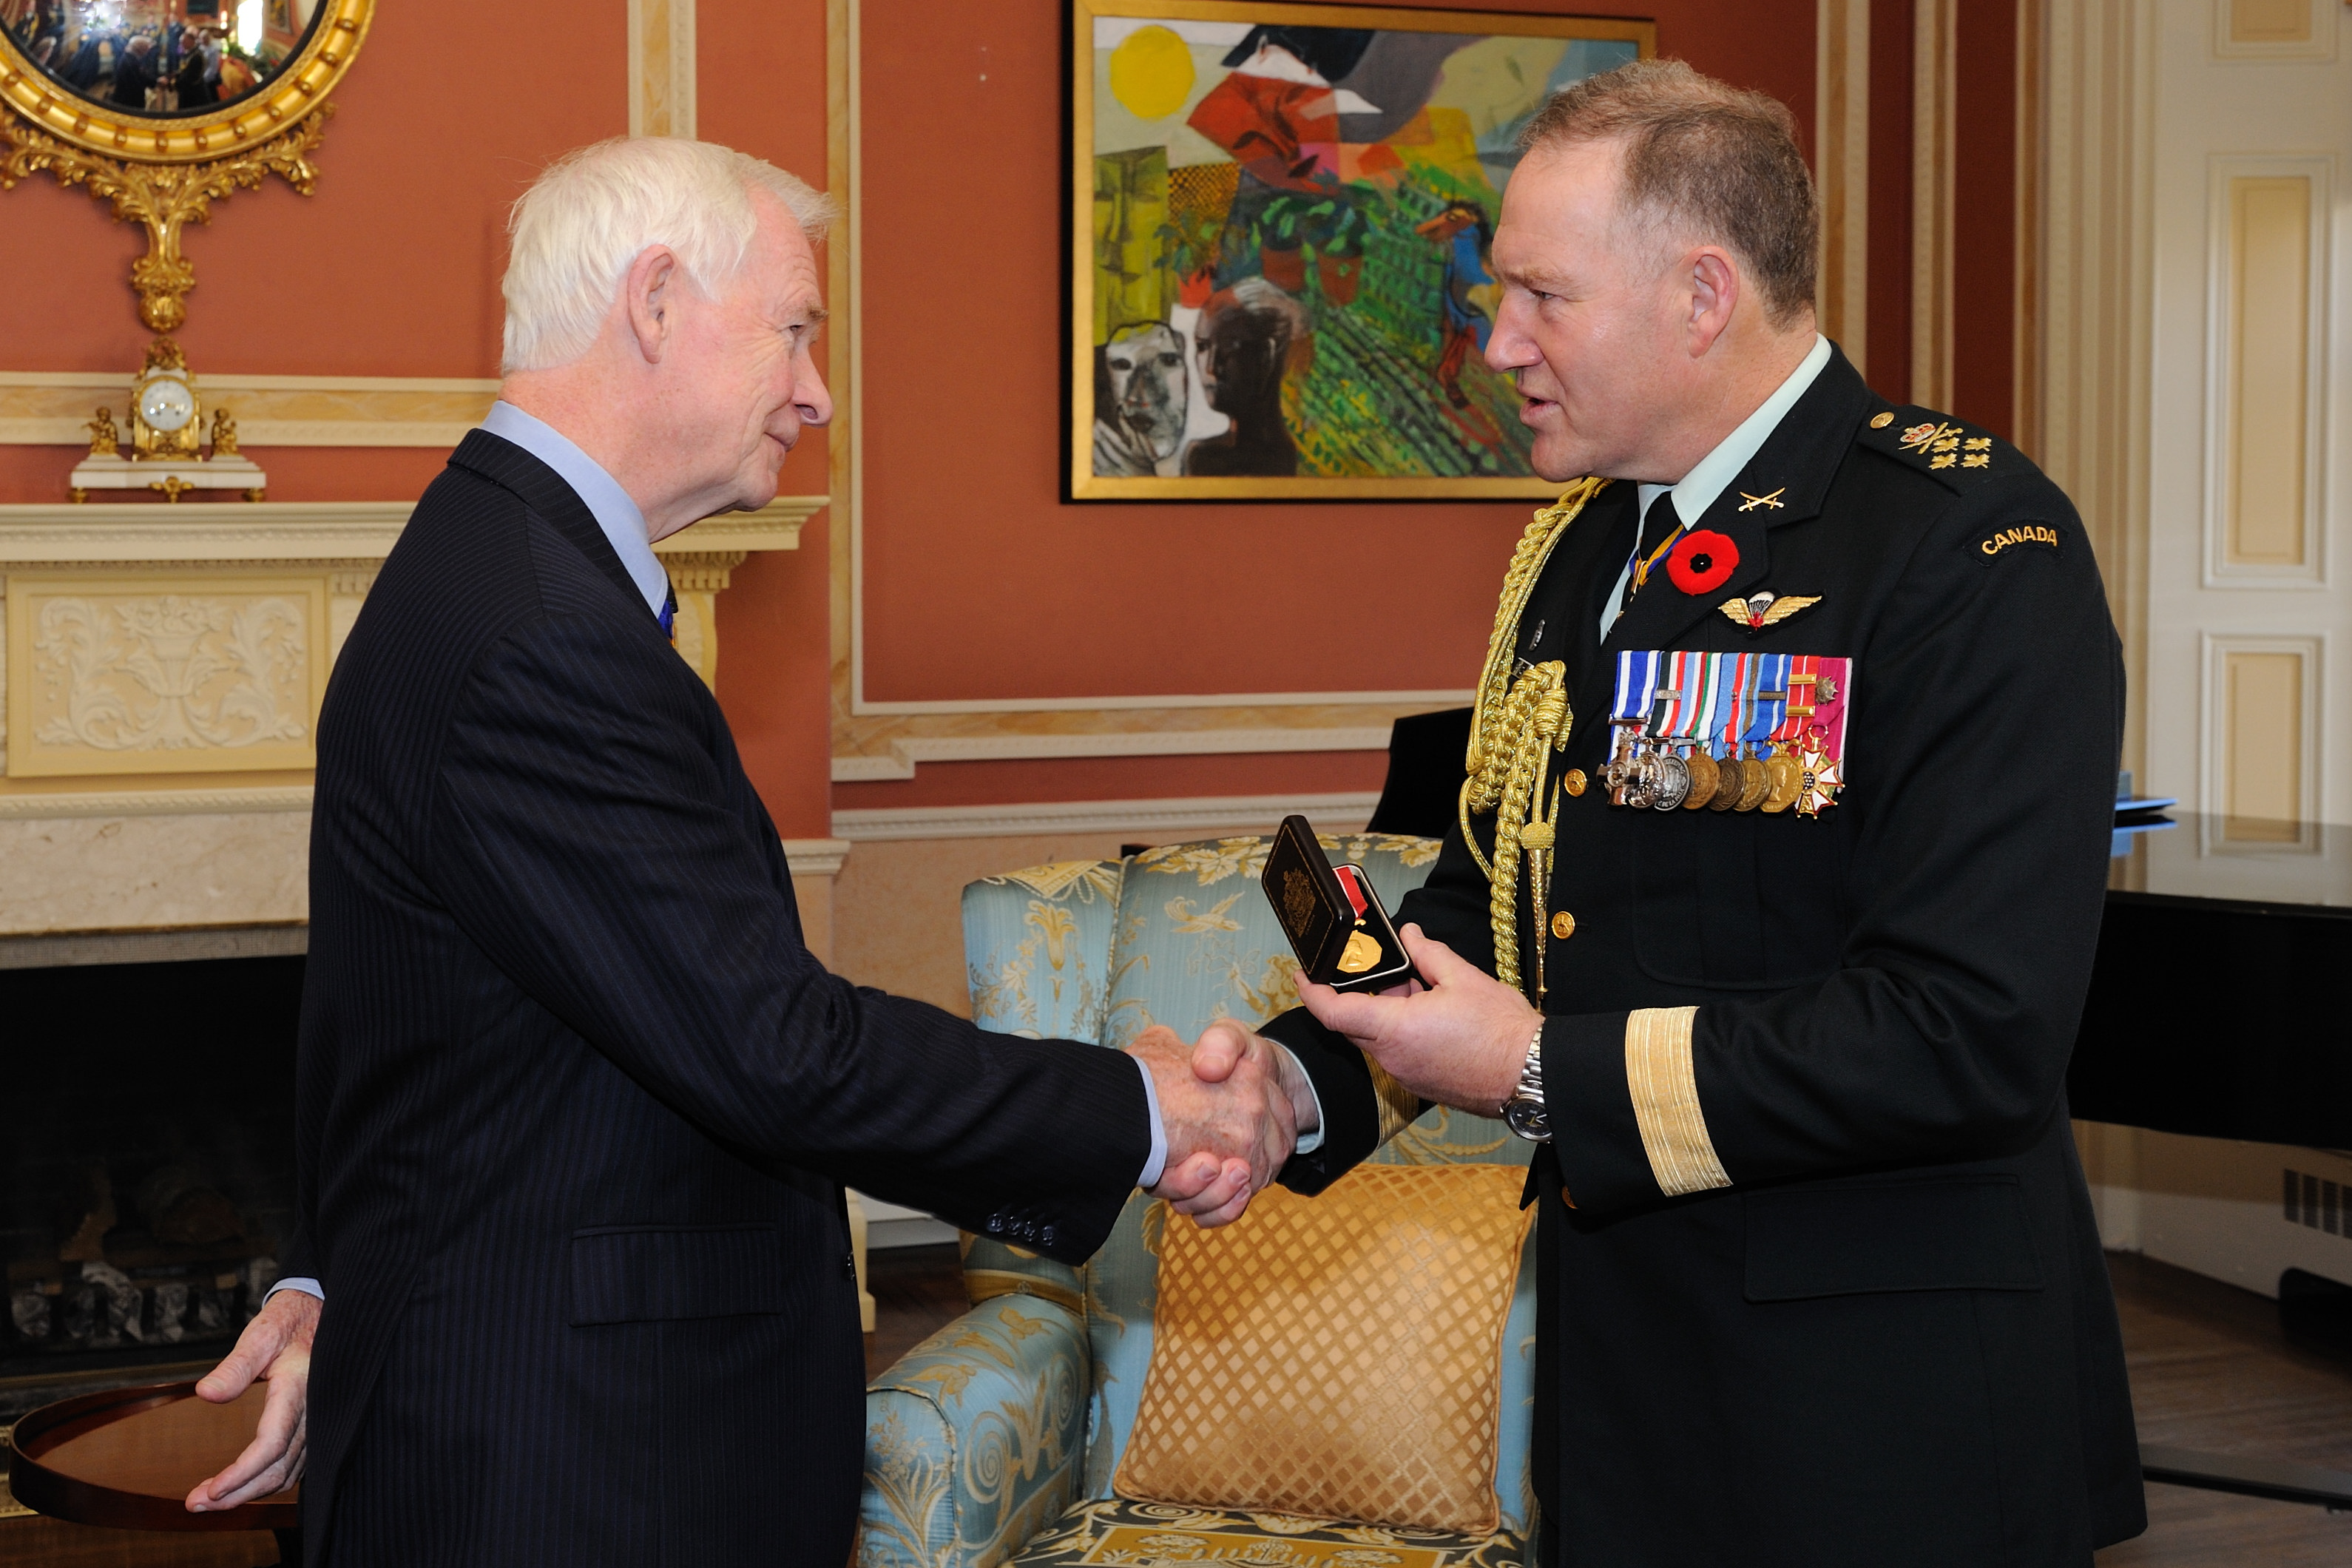 General Walt Natynczyk, C.M.M., M.S.C., C.D., Chief of the Defence Staff, presented the Canadian Forces' Decoration to His Excellency the Right Honourable David Johnston, C.C., C.M.M., C.O.M., C.D., Governor General and Commander-in-Chief of Canada, during a ceremony at Rideau Hall on November 2, 2010.